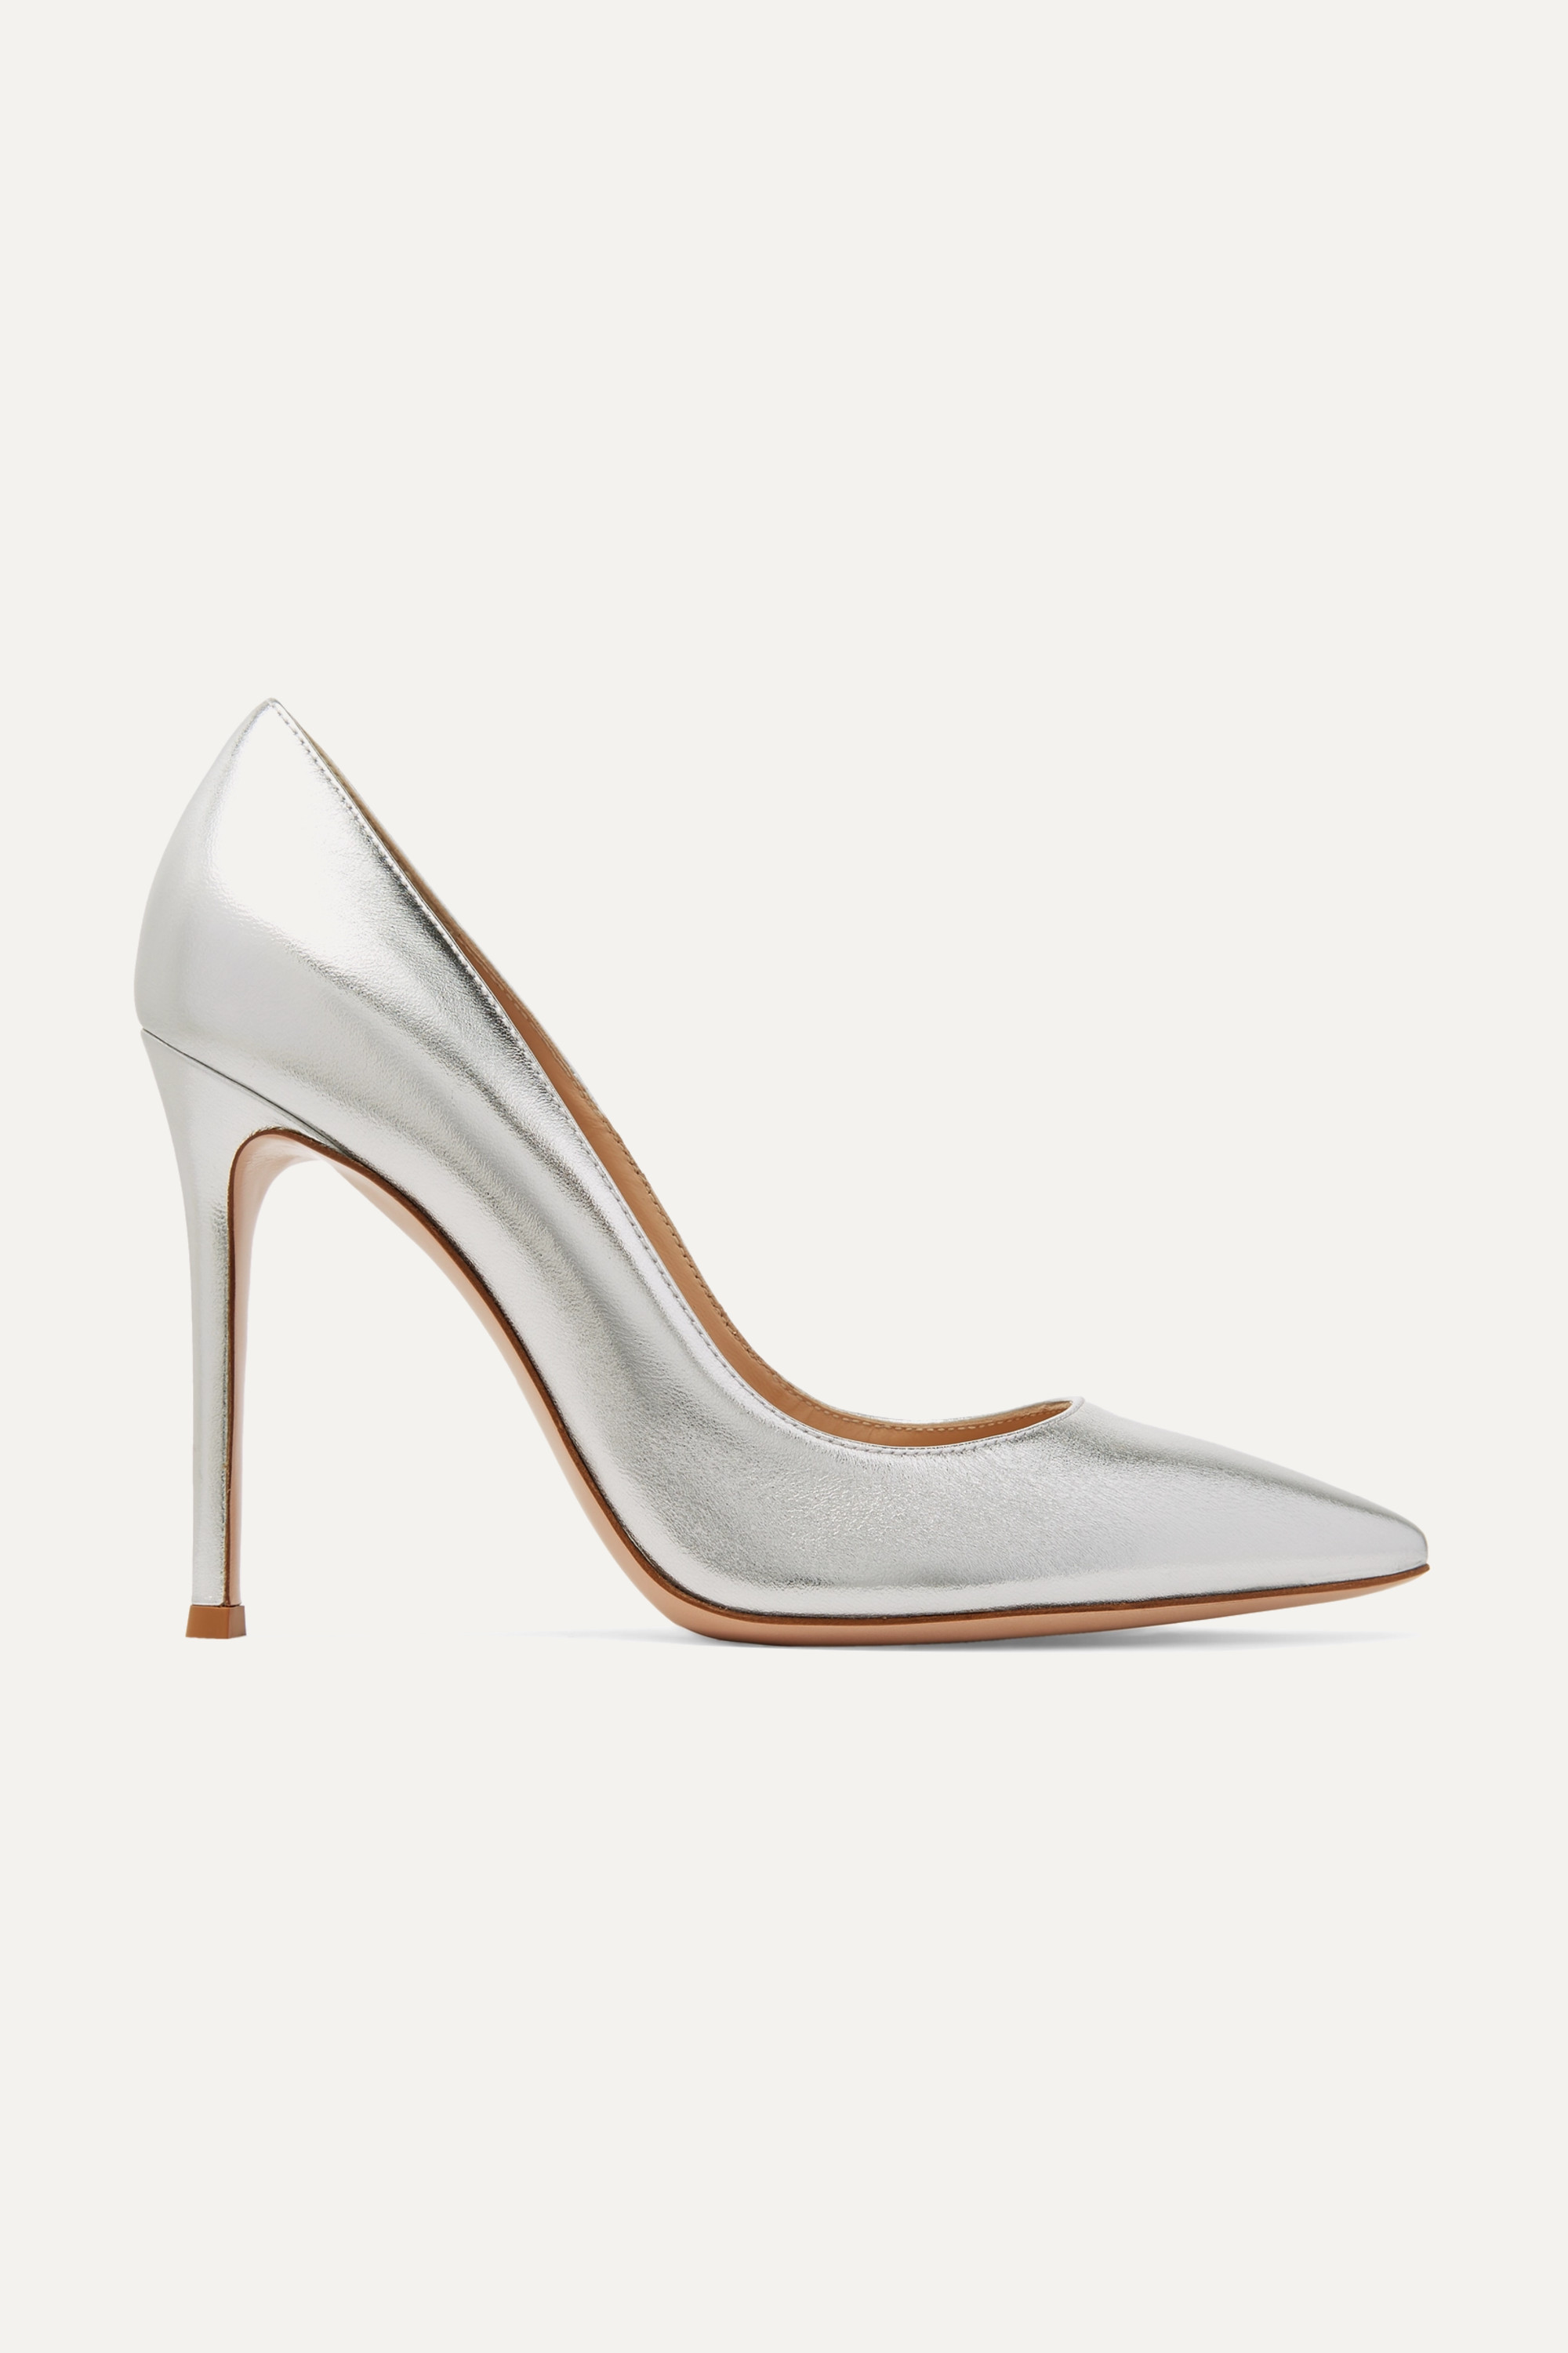 Silver 105 metallic leather pumps